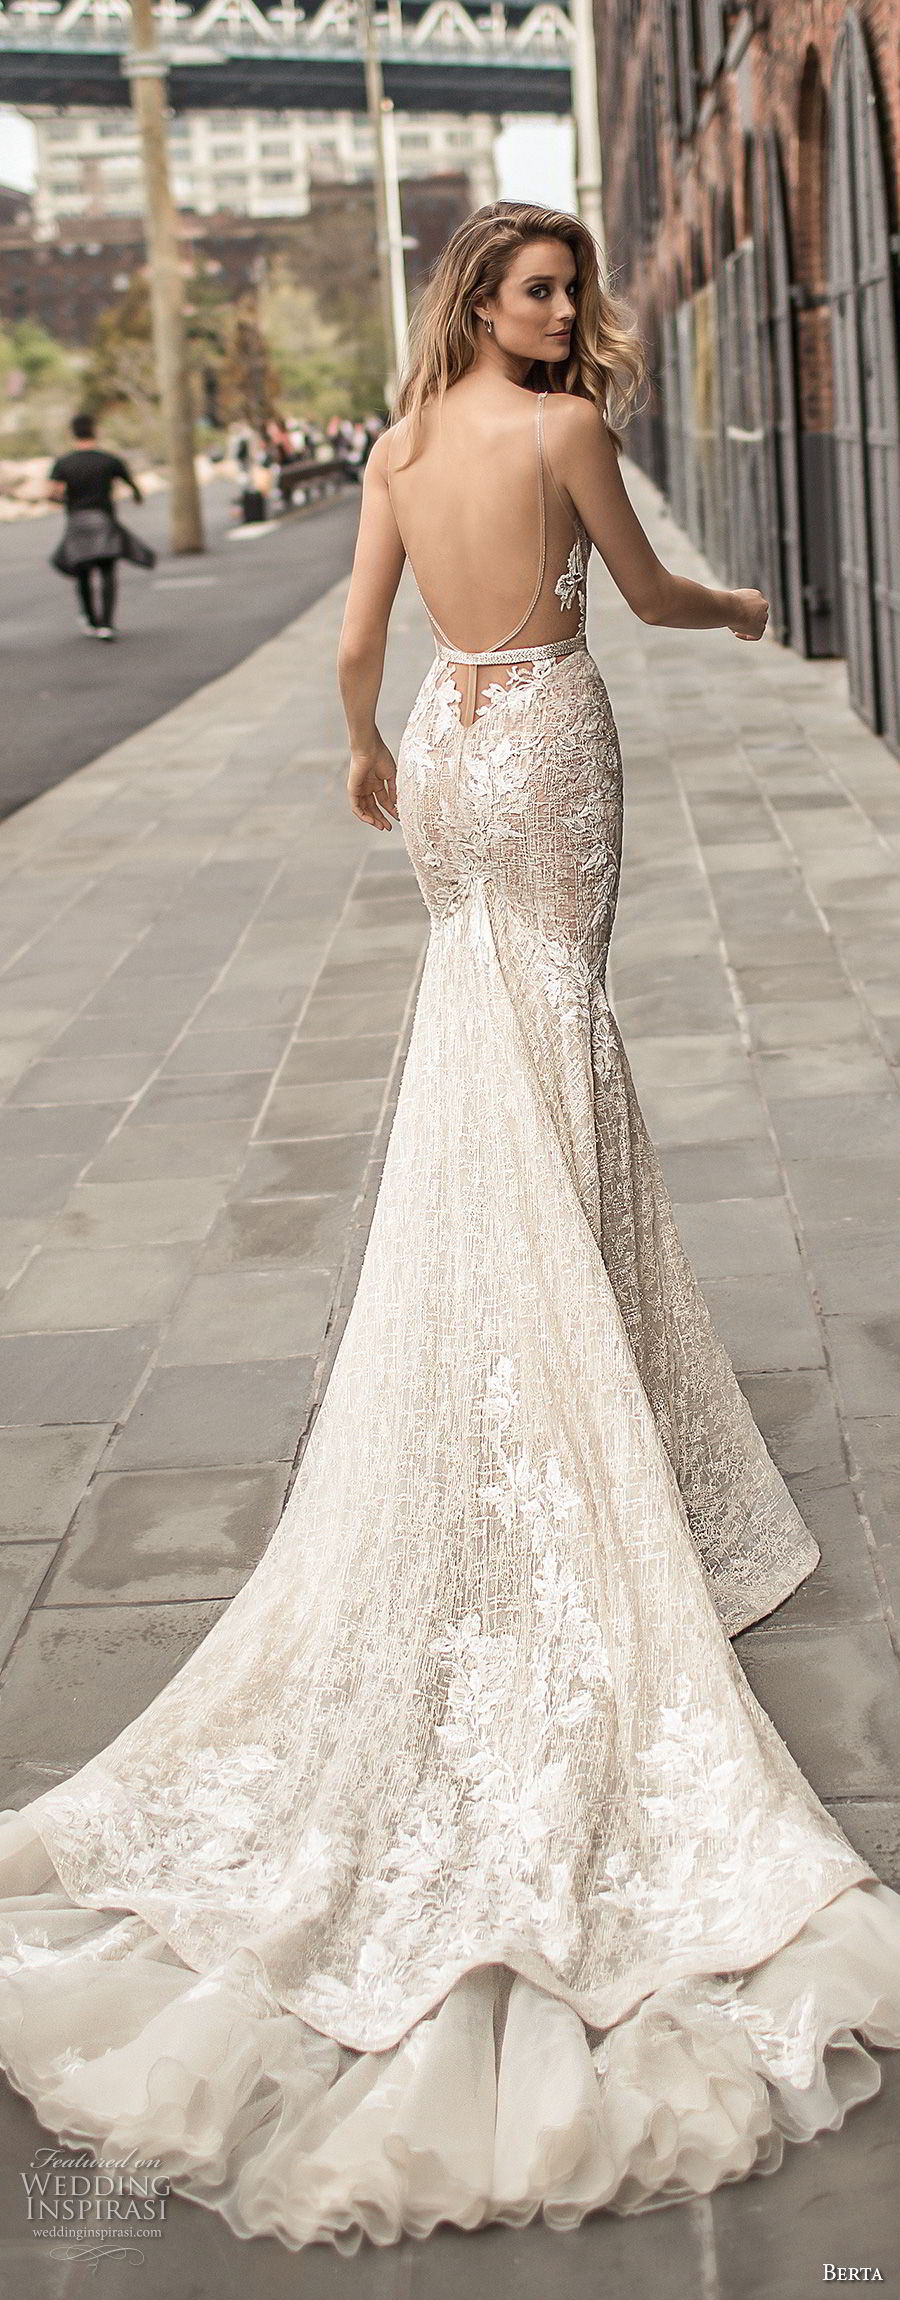 berta spring 2018 bridal sleeveless deep plunging v neckline full embellishment sexy elegant fit and flare wedding dress open low back chapel train (7) bv